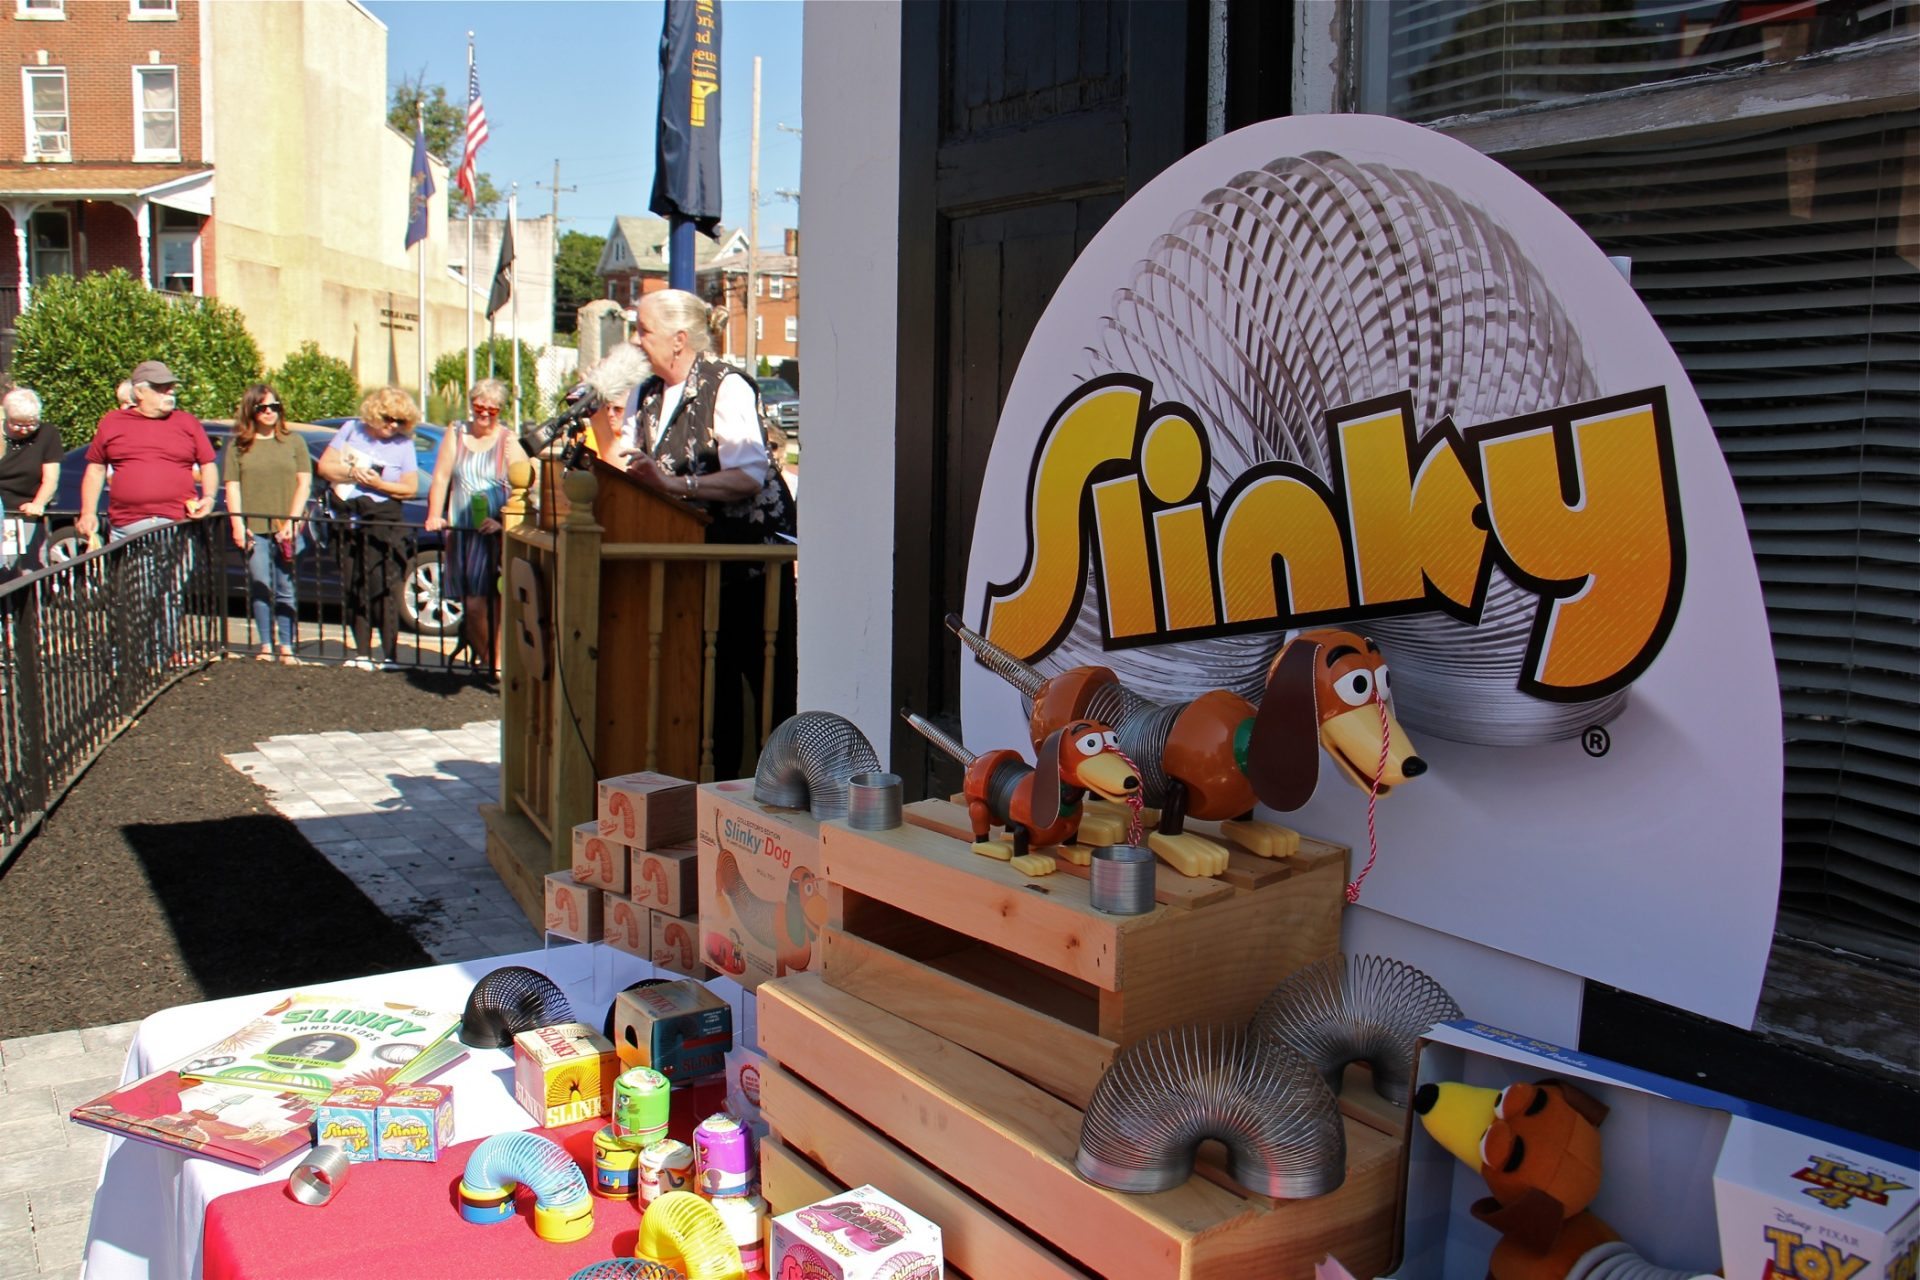 An array of Slinky toys are displayed outside the Clifton Heights Historical Society building, where a historical marker was placed identifying Clifton Heights as an early manufacturer of the popular toy.